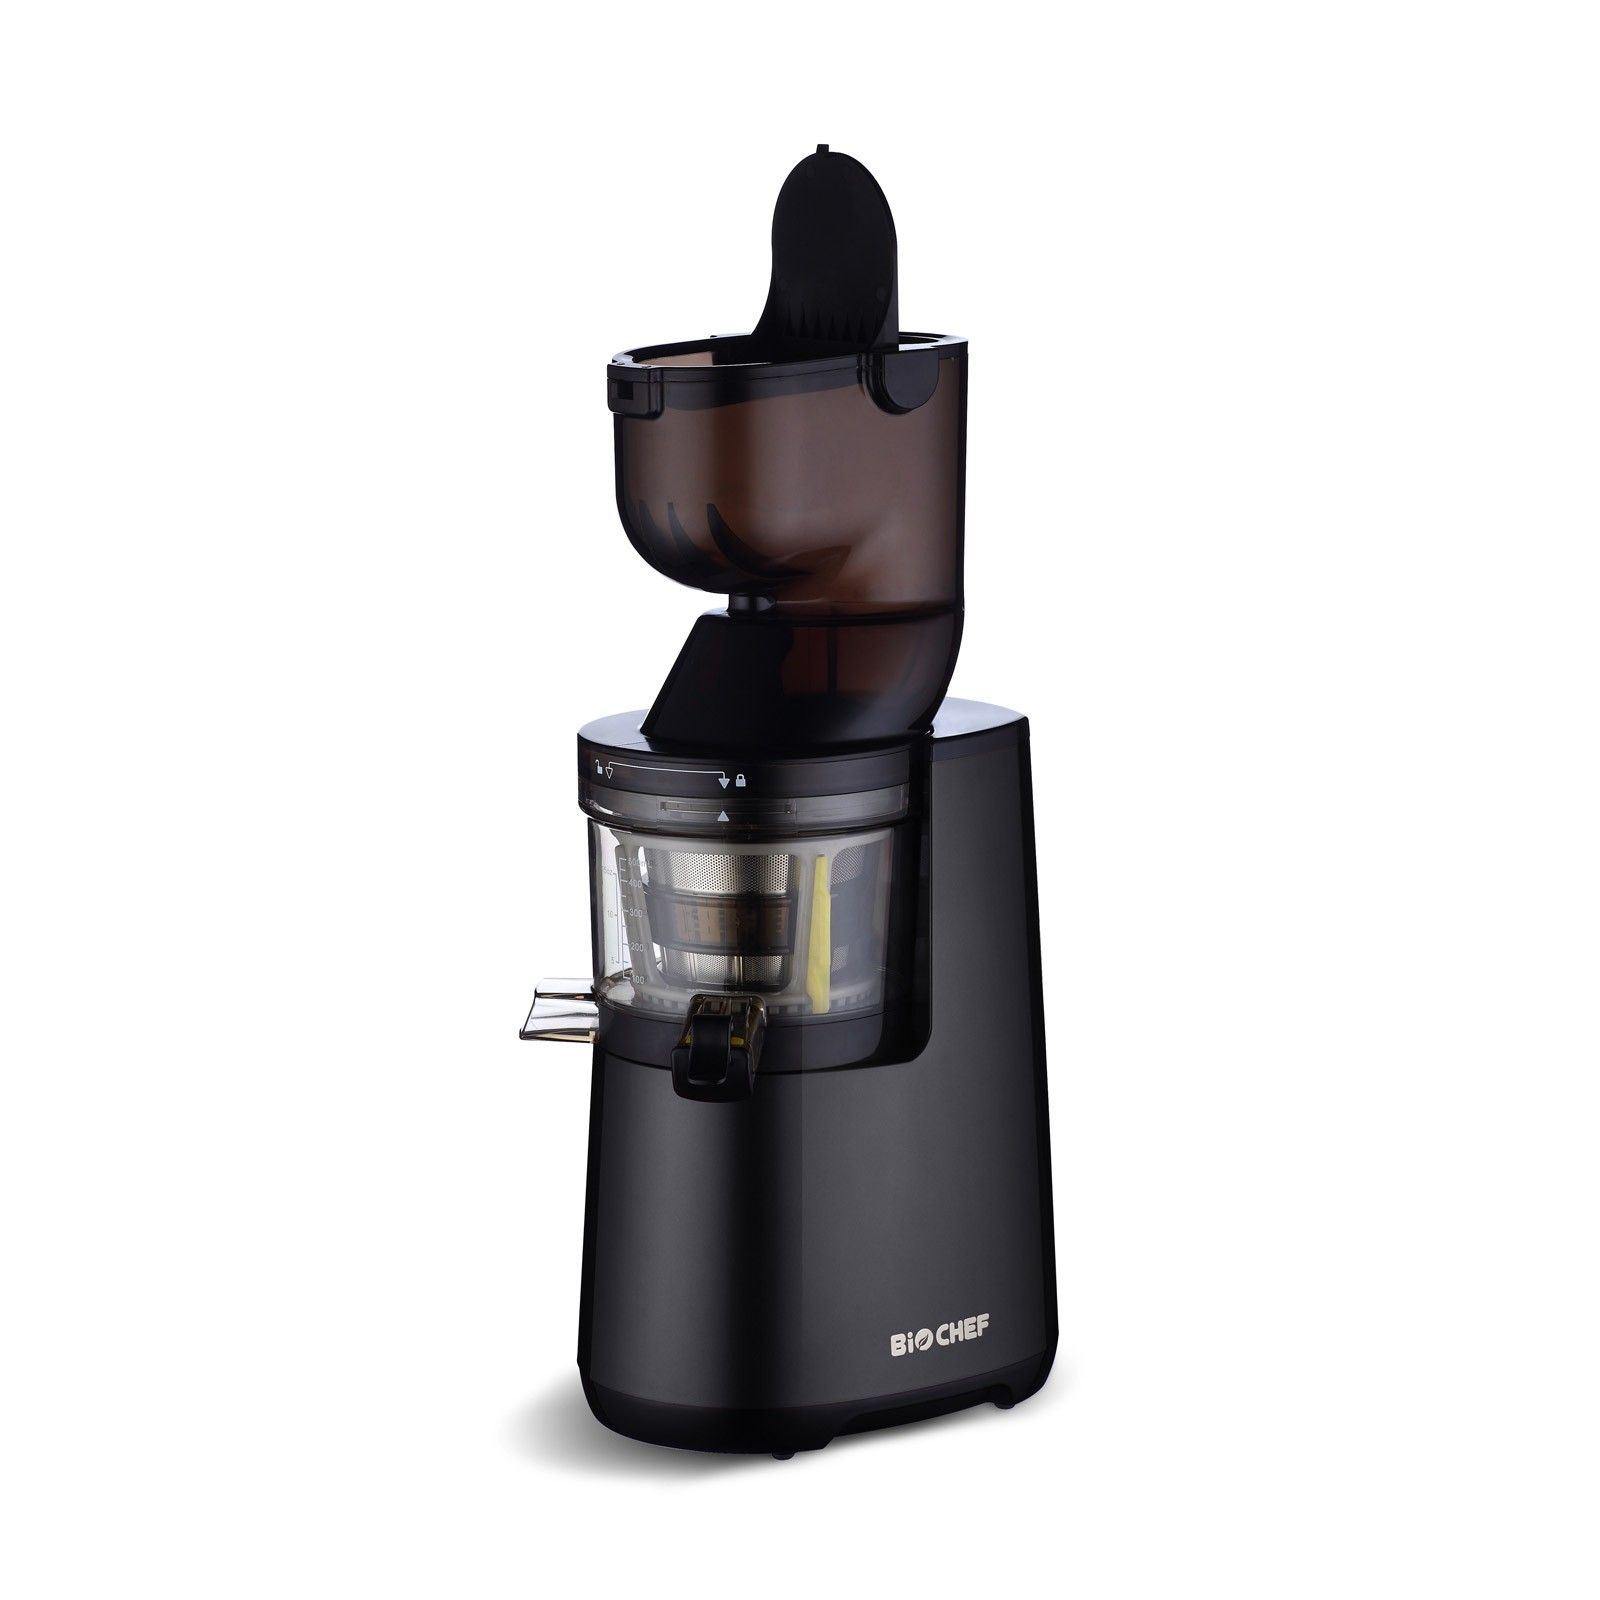 Biochef Atlas Whole Slow Juicer Vs Kuvings : BioChef Atlas Whole Slow Juicer W2 - Od??av?ova?e, MixEry